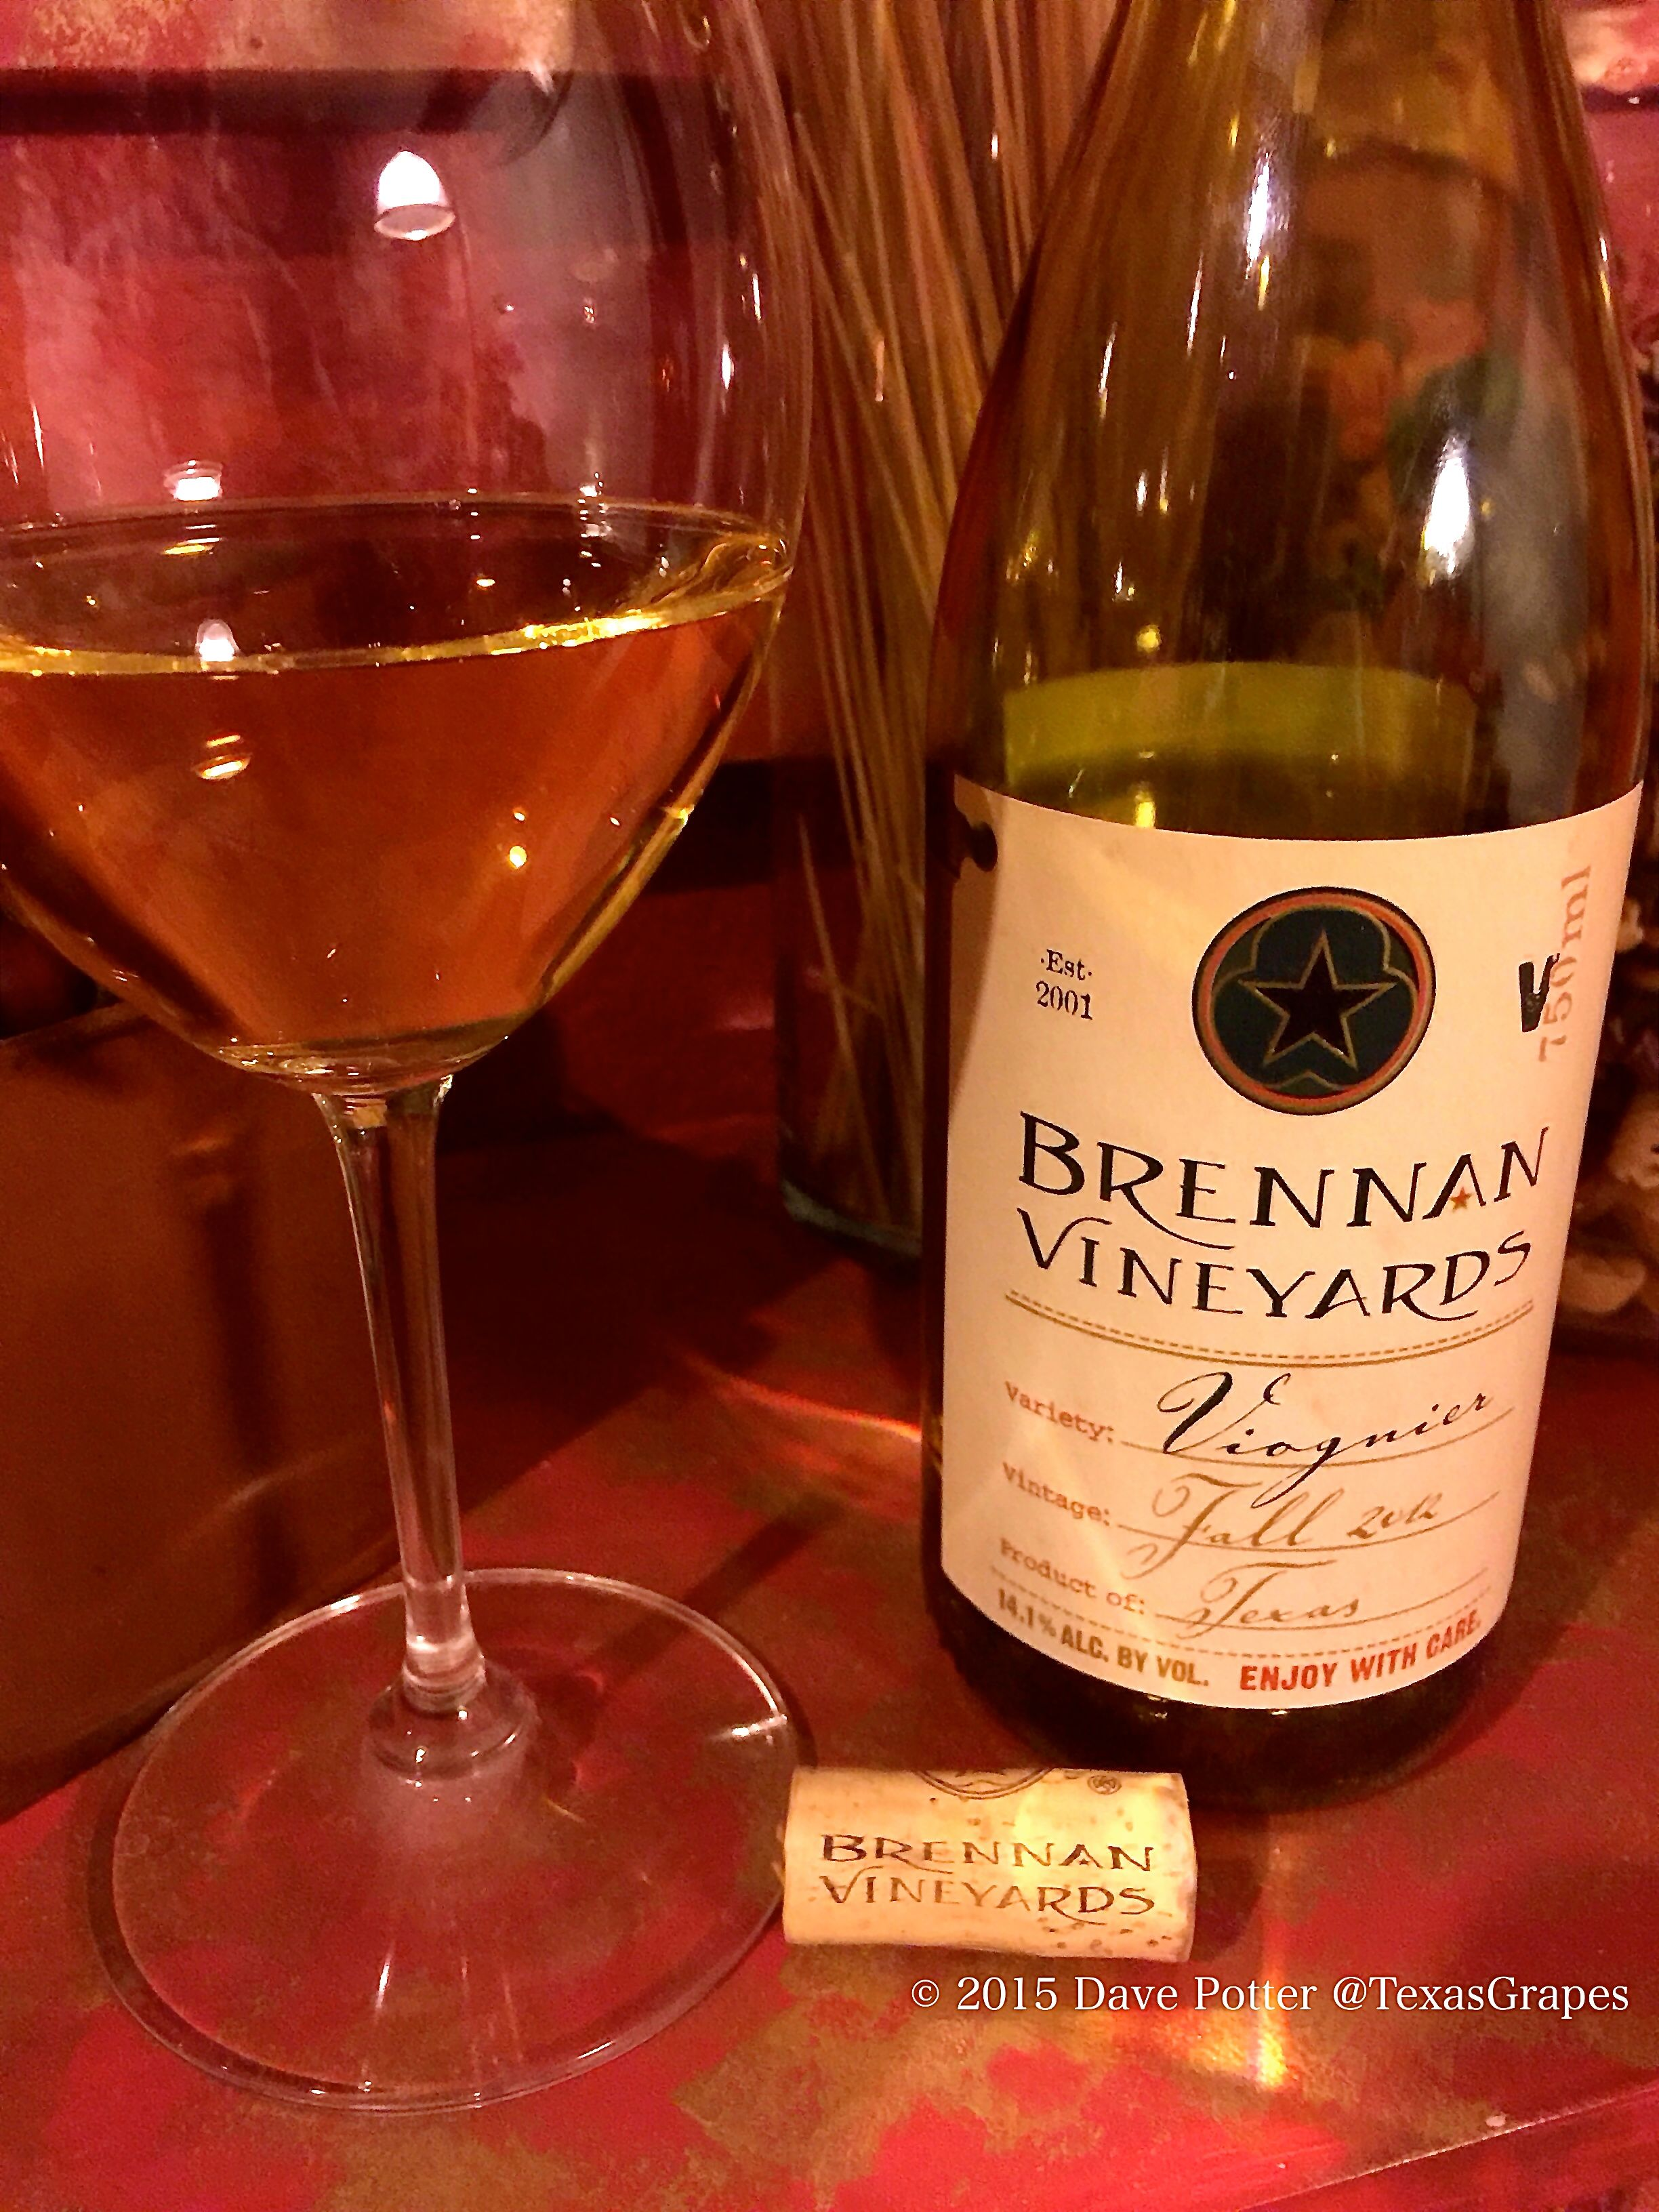 Tonight S Txwine And Birthday Wine Of Choice Is Brennan 2012 Viognier I Got Two Bottles Left In My List Of The Top 5 T Birthday Wine Wine Viognier